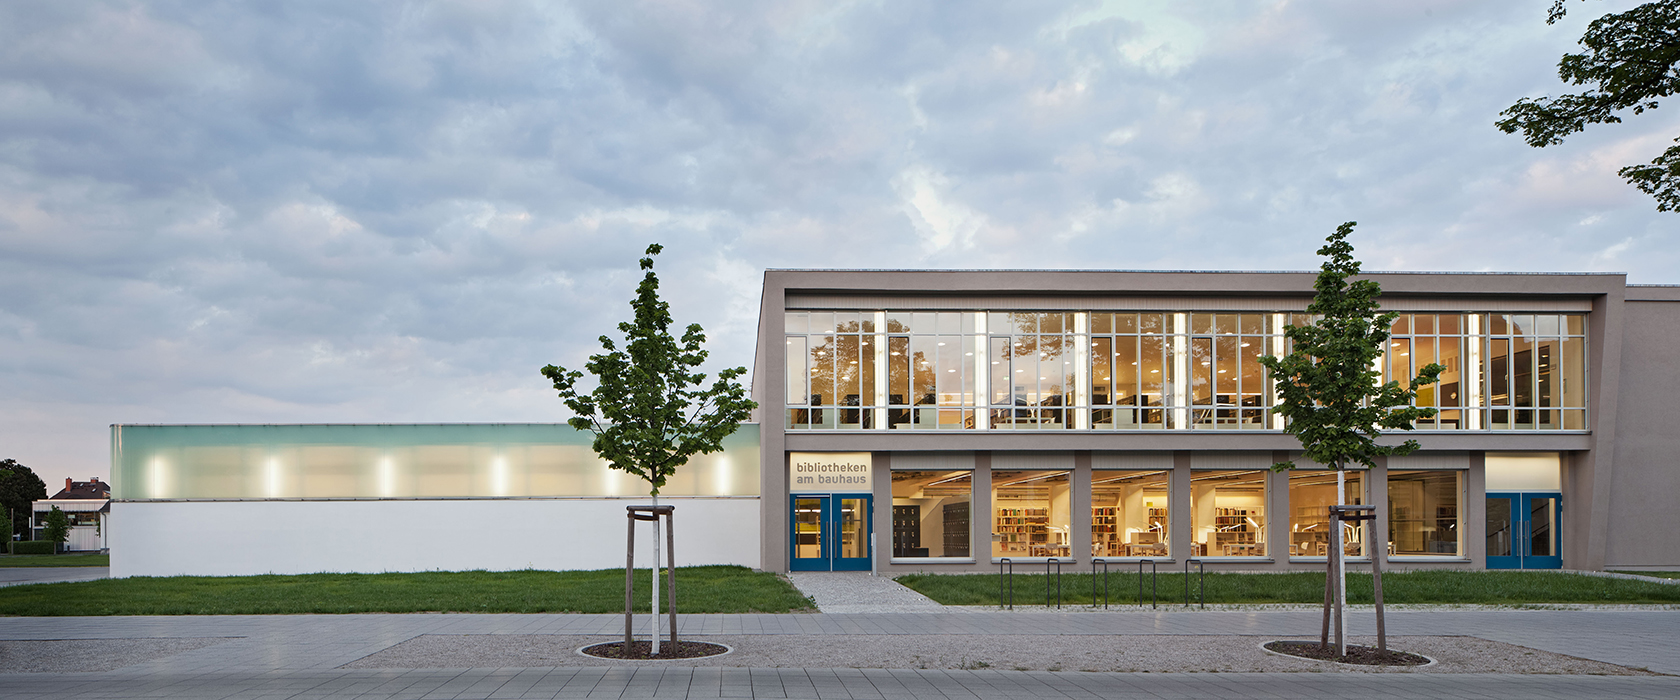 Architekt Neuss Burckhardtpartner